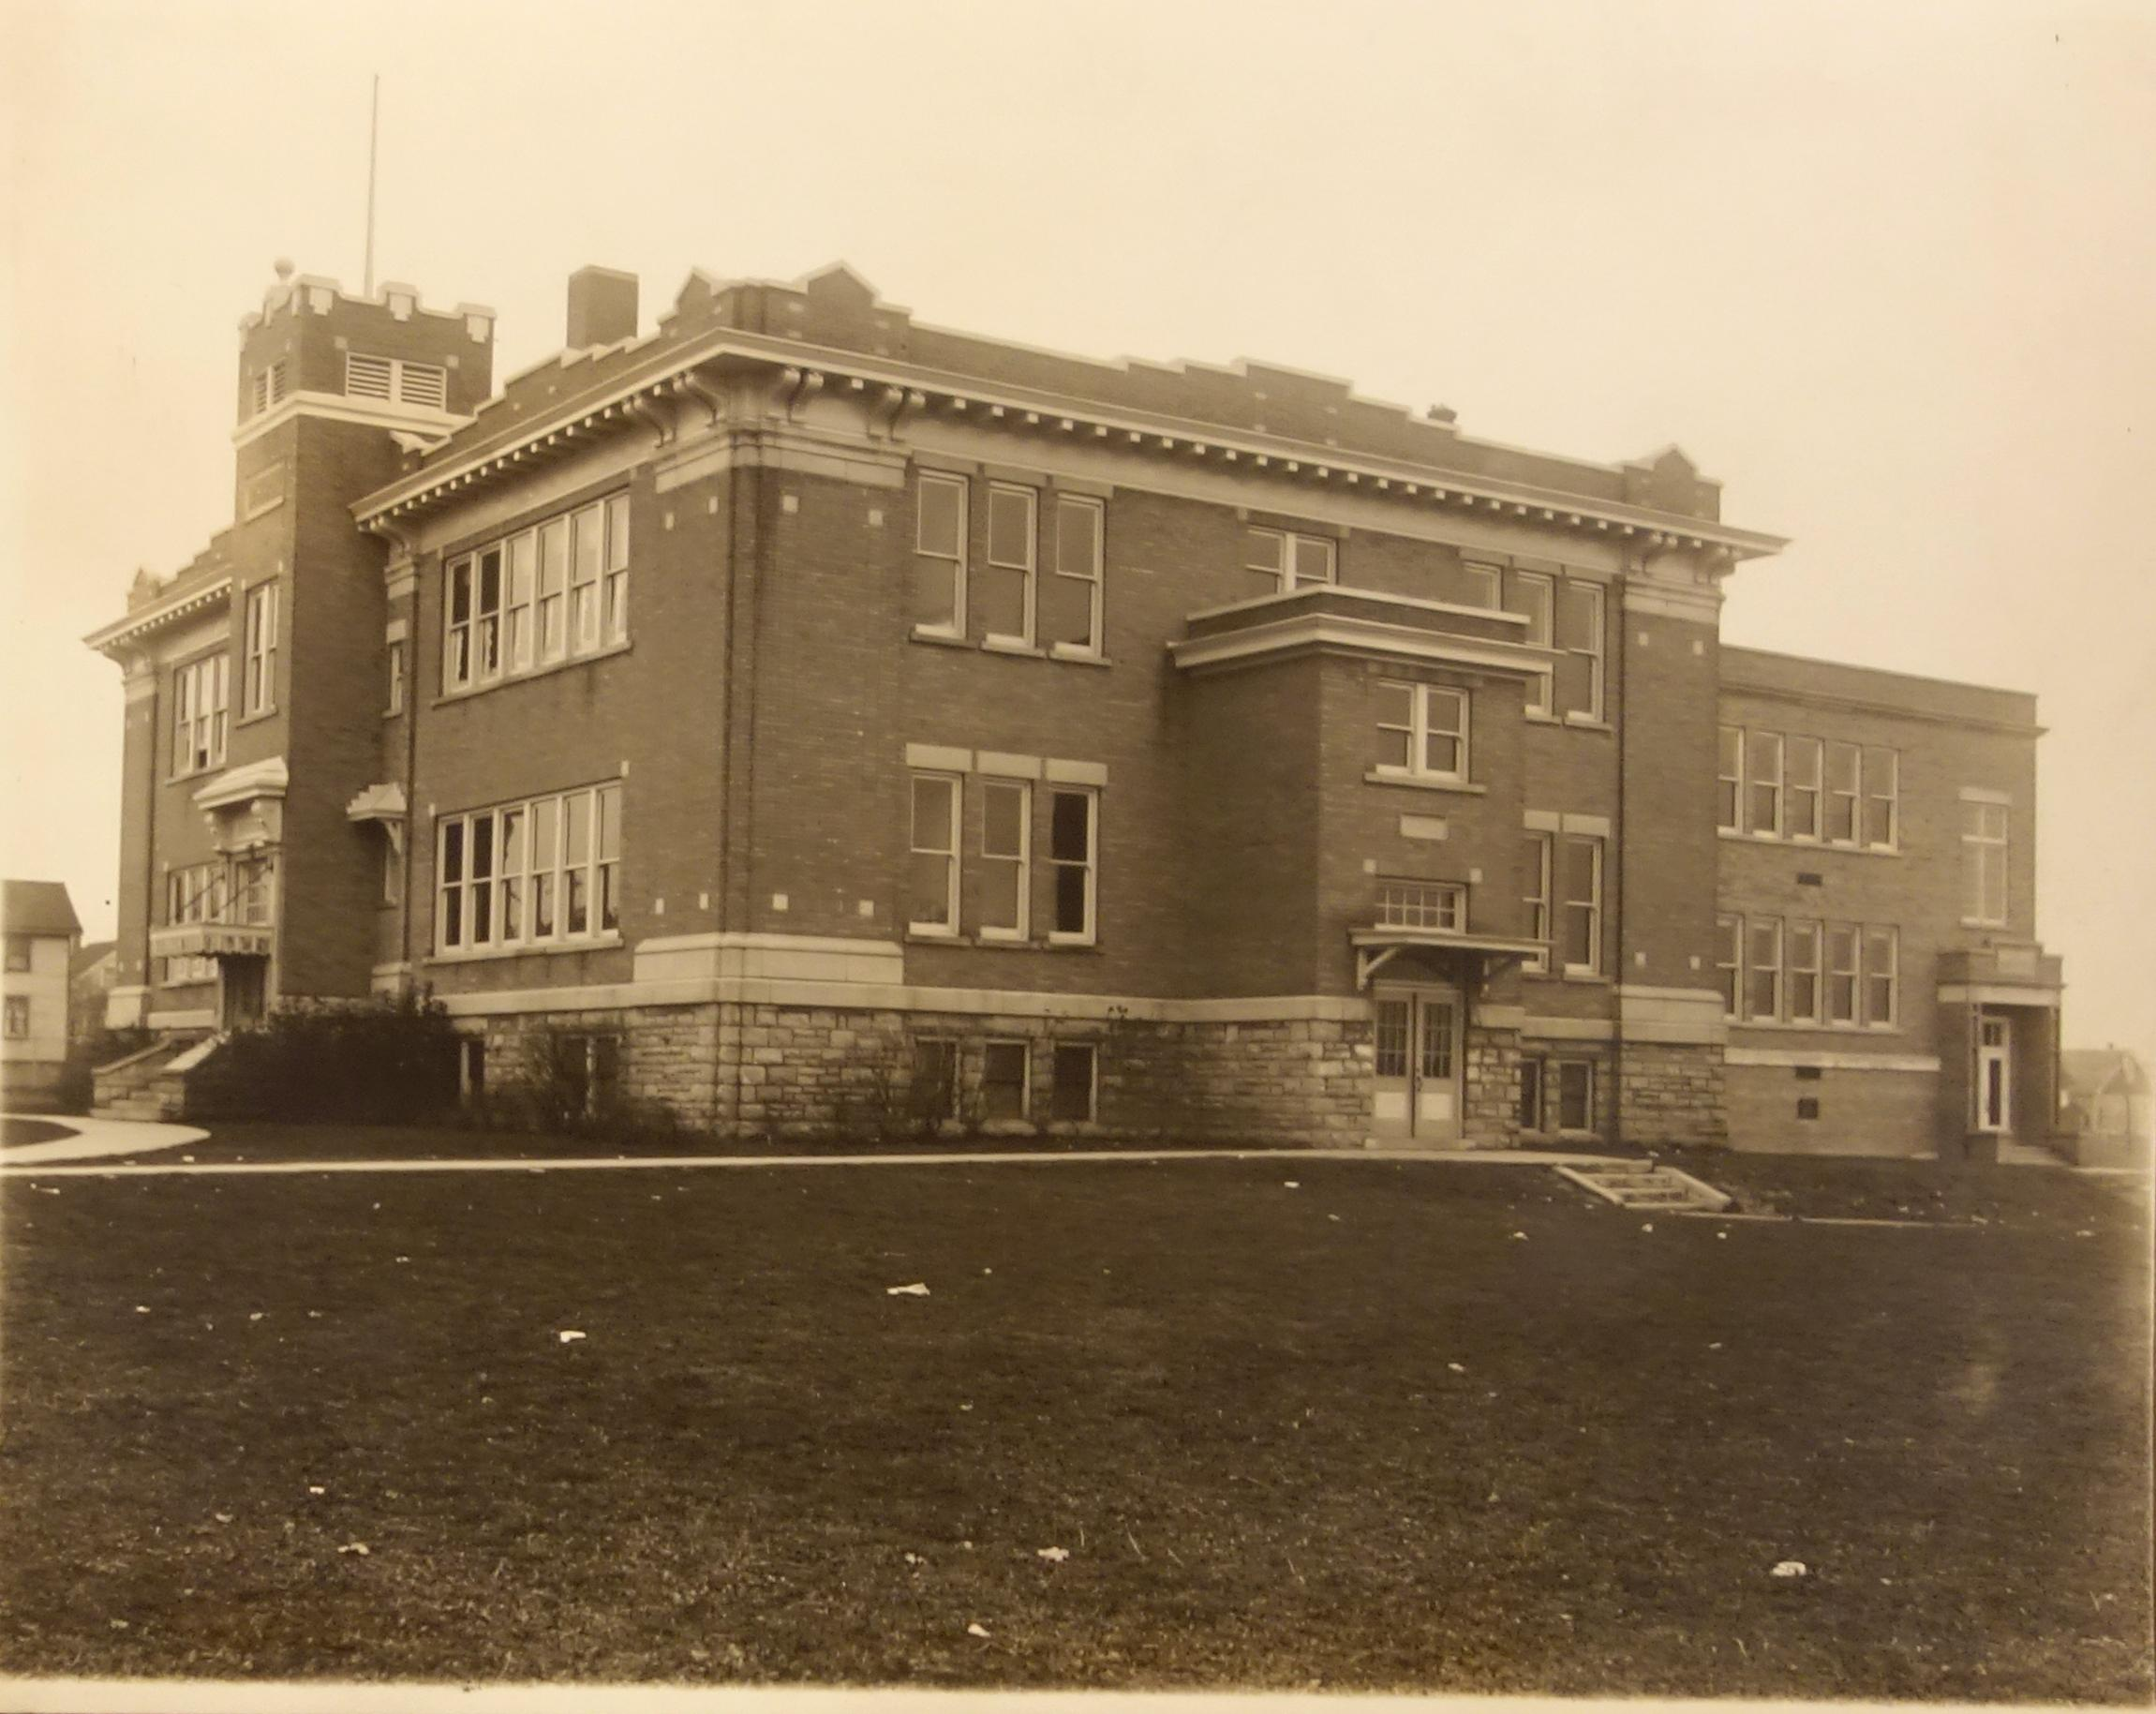 Niagara Falls Memorial School. Black and white photo showing a large brick school building with a flat roof, stone base and stone highlights. There is a tower on the left side of the image marking the entrance to the school. Many small windows are located along the side facing the photographer.  Decorative battlements surround the roof. There is a concrete sidewalk stretching about the school building with the grass school yard.